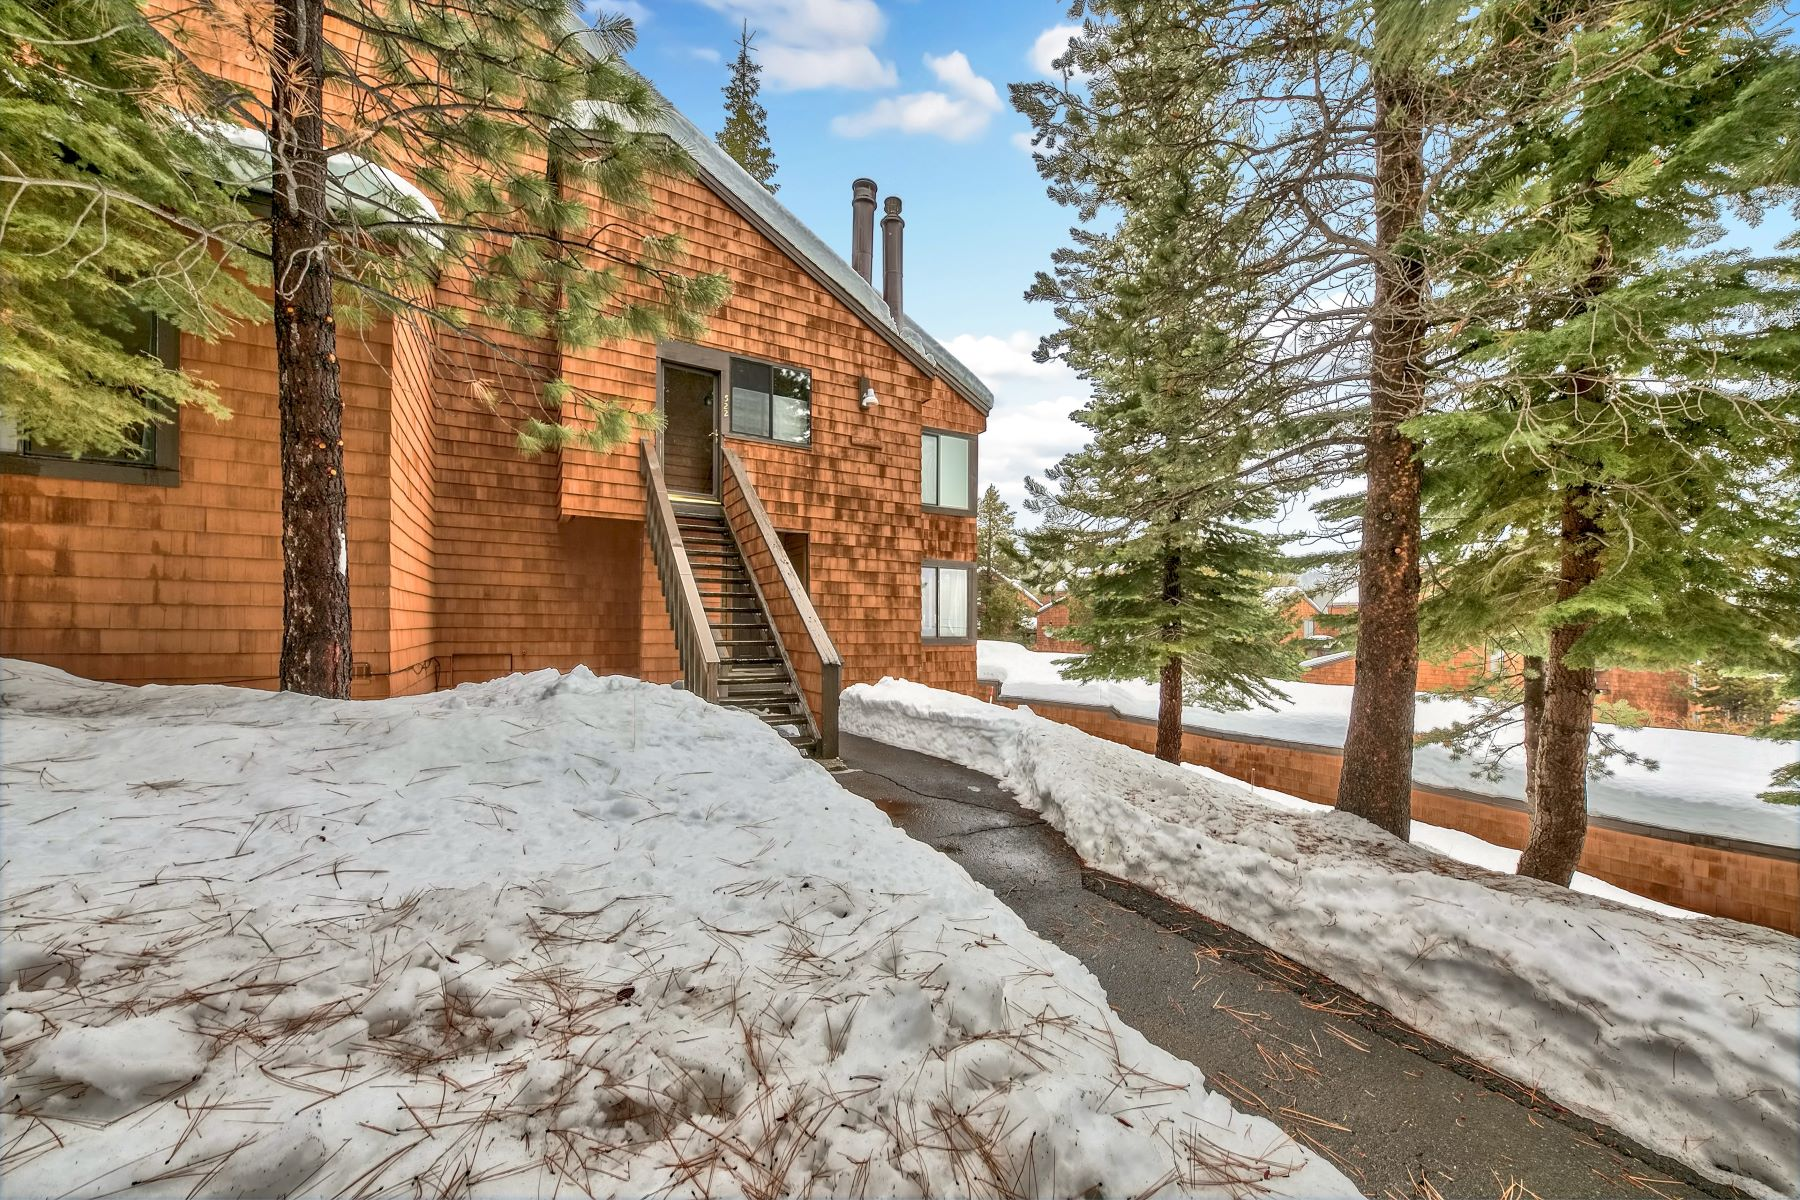 Property for Active at 11667 Snowpeak Way #523 Truckee California 96161 11667 Snowpeak Way #523 Truckee, California 96161 United States